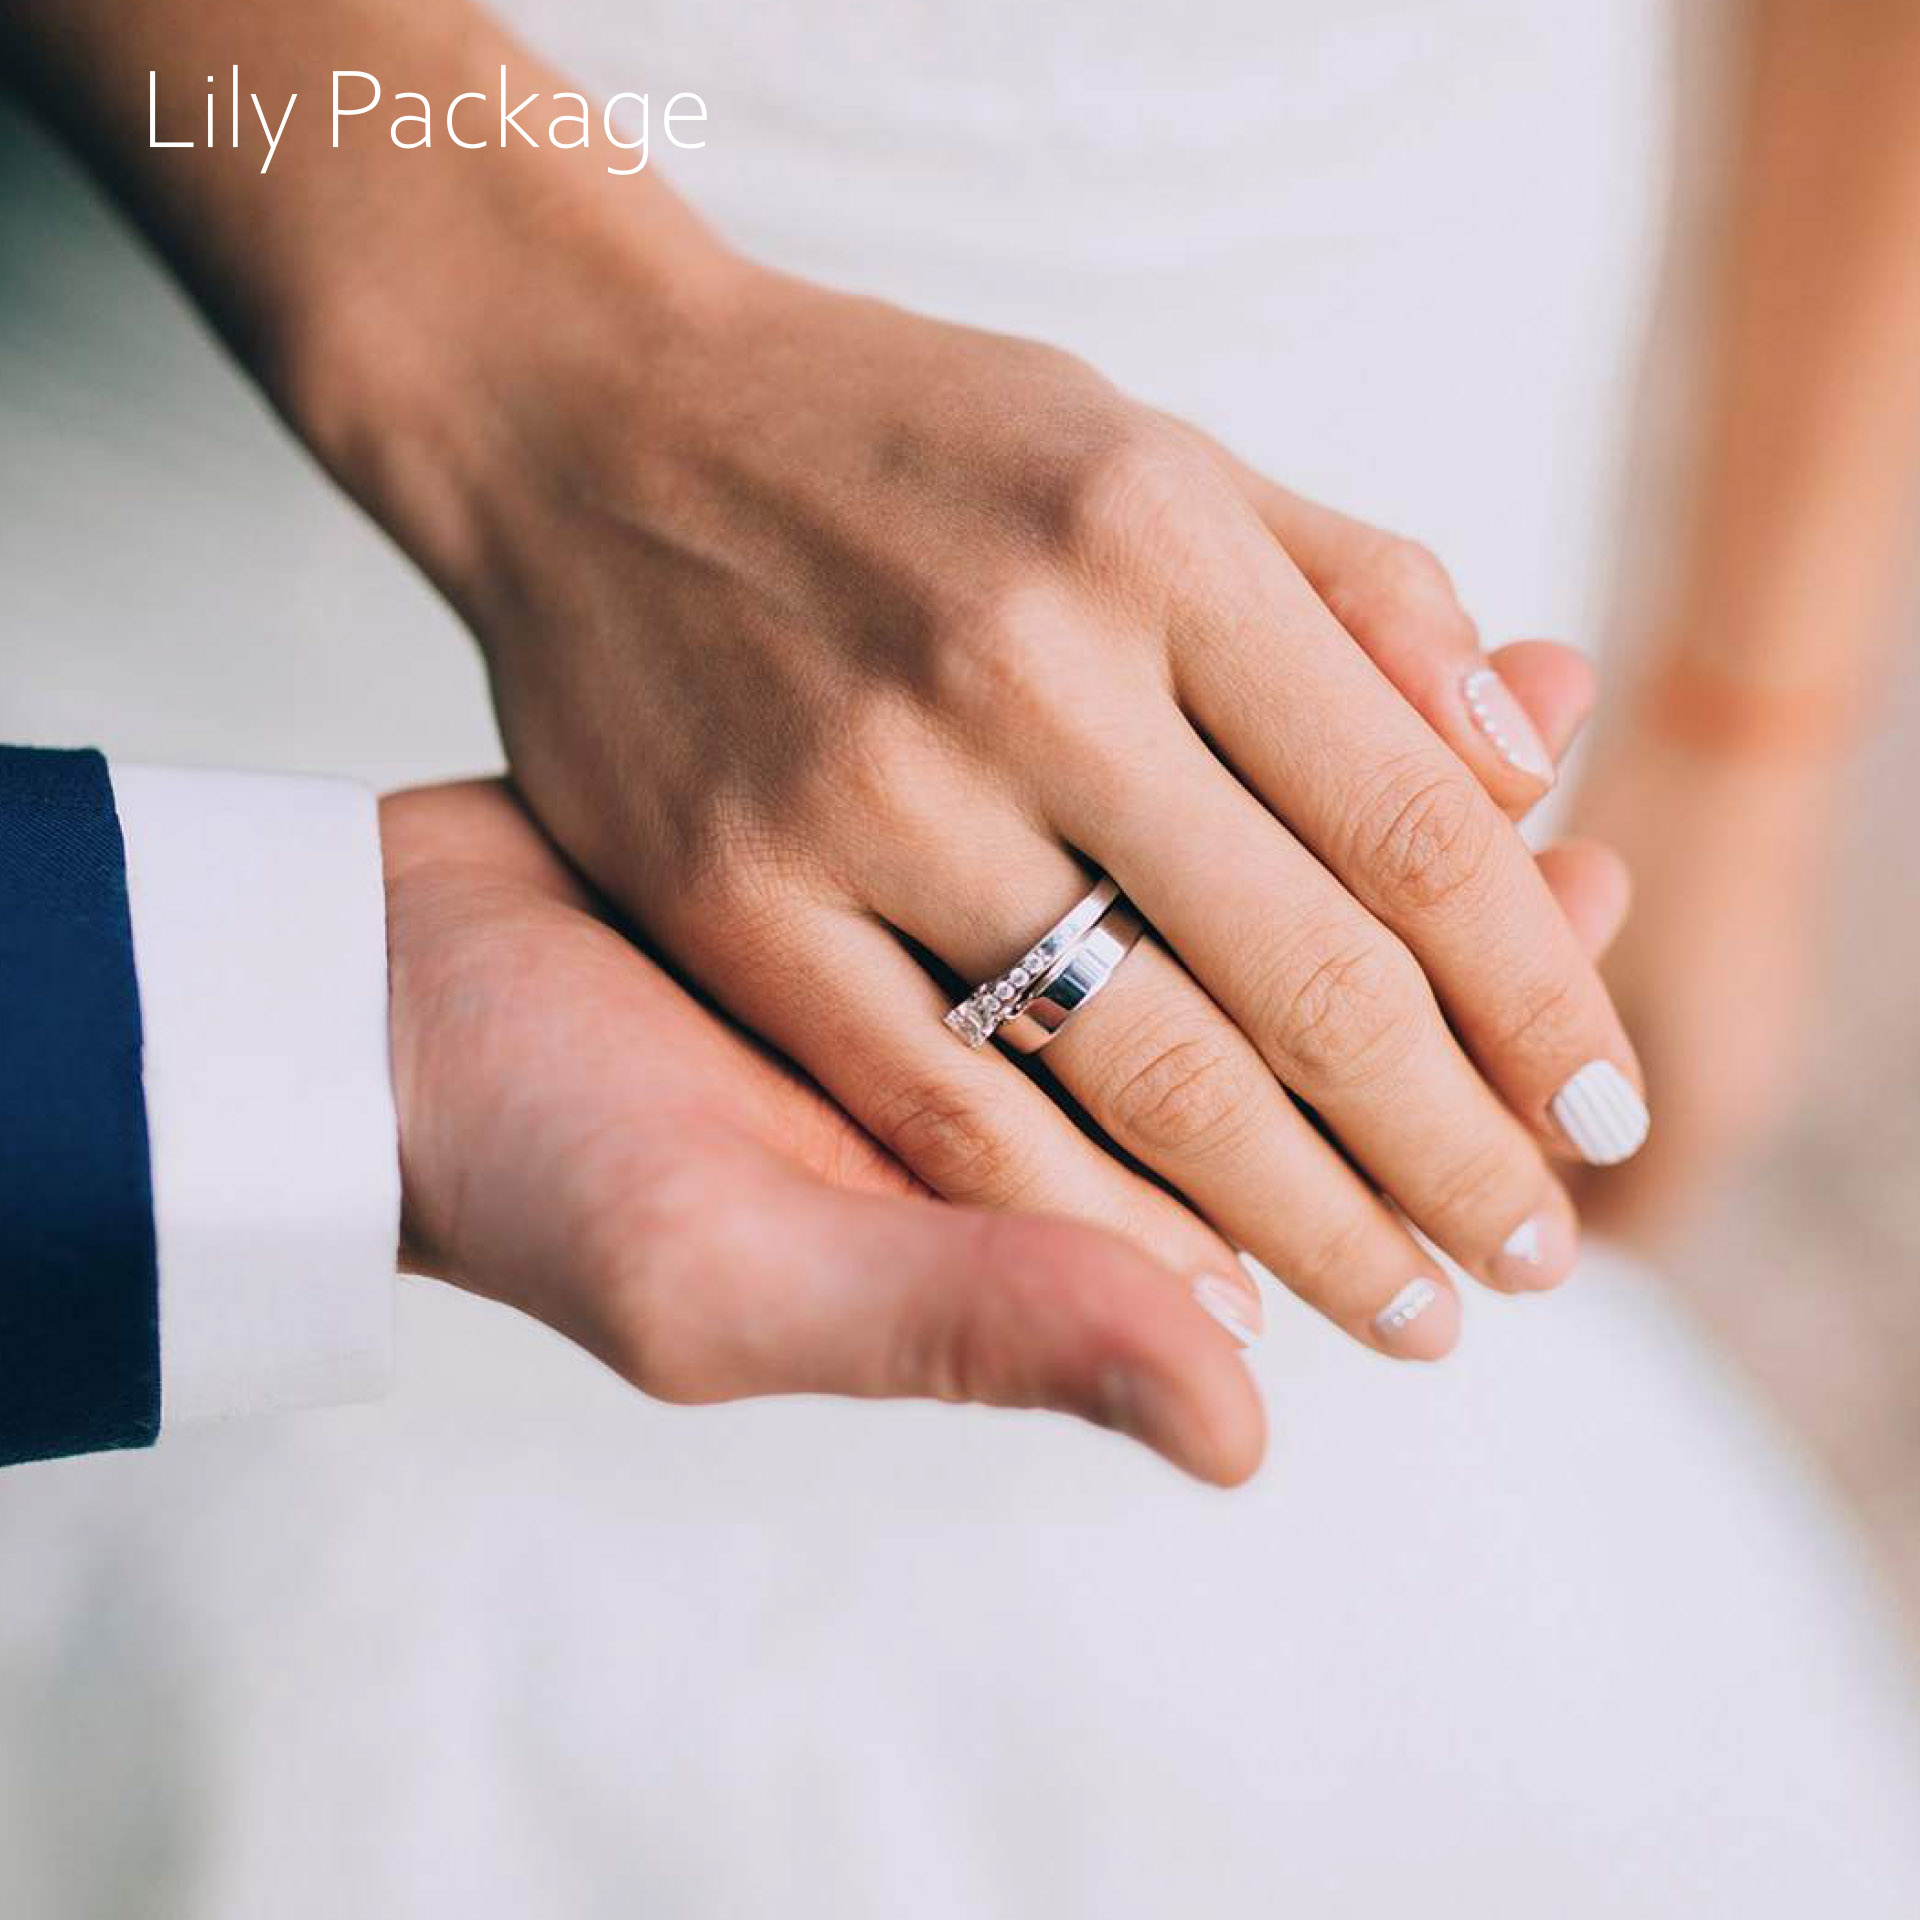 Lily Wedding Package at the Charlecote Pheasant Hotel